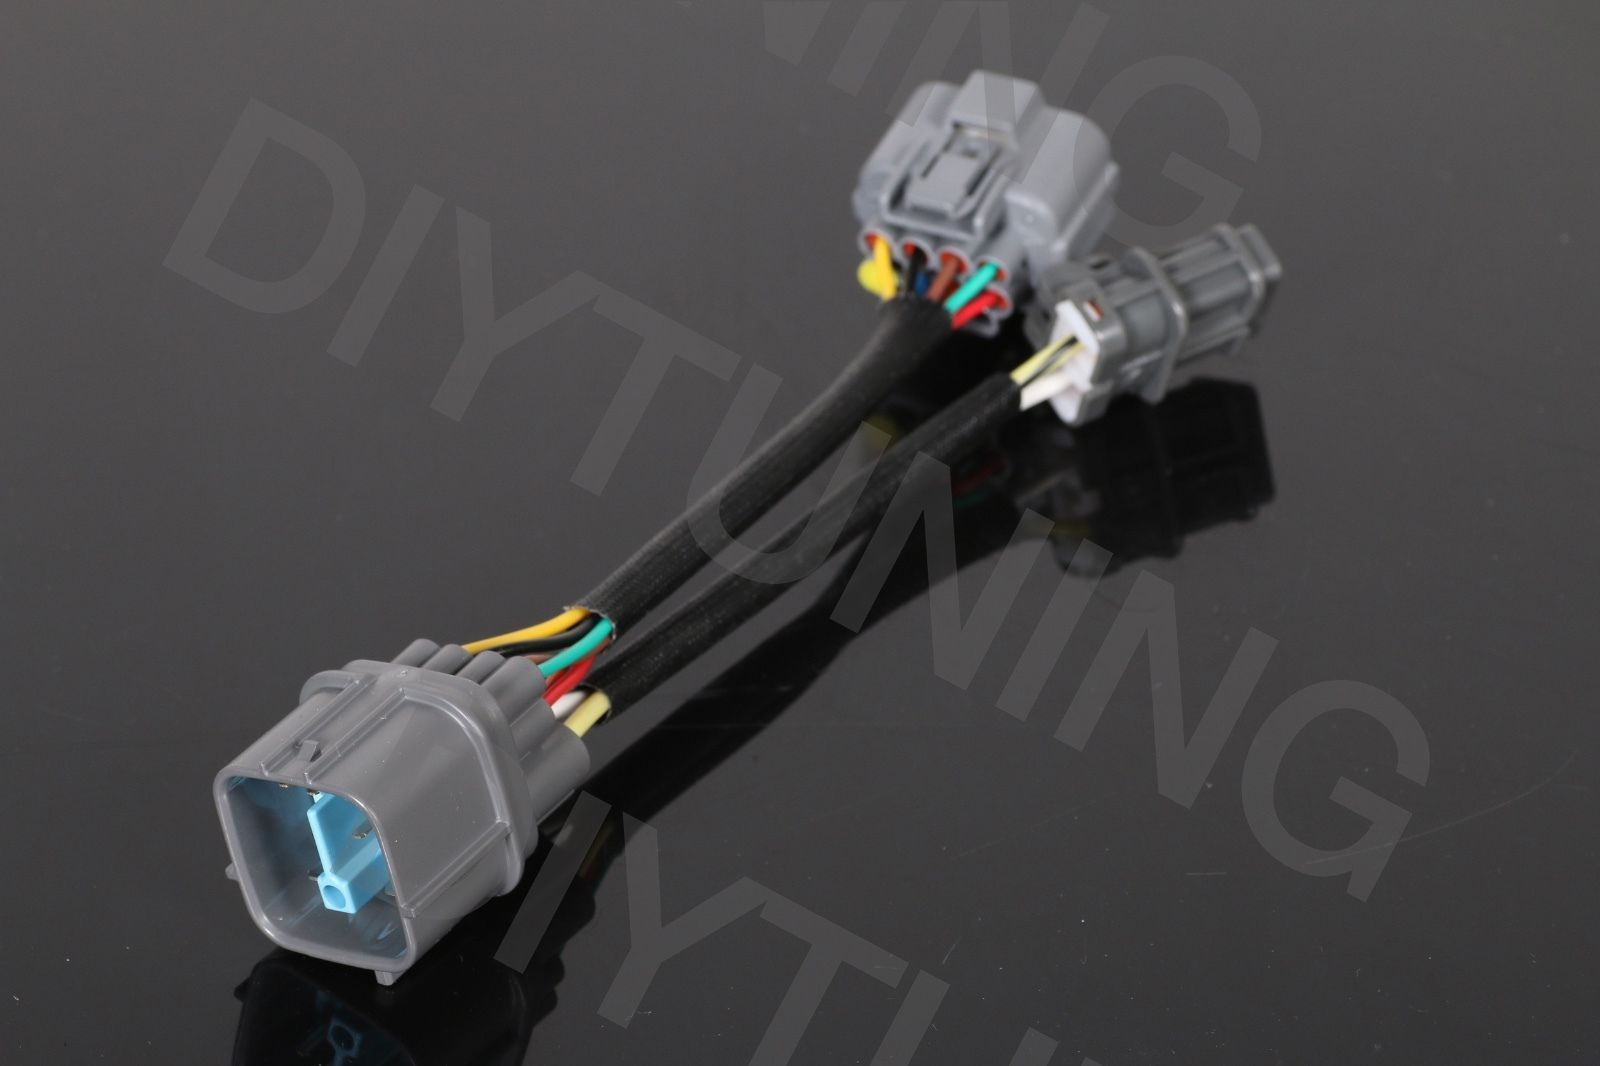 Cool Awesome Honda Acura Engine Harness 10 Pin Obd2 To Obd1 Wiring Distributor Jumper Swap Dizzy 2017